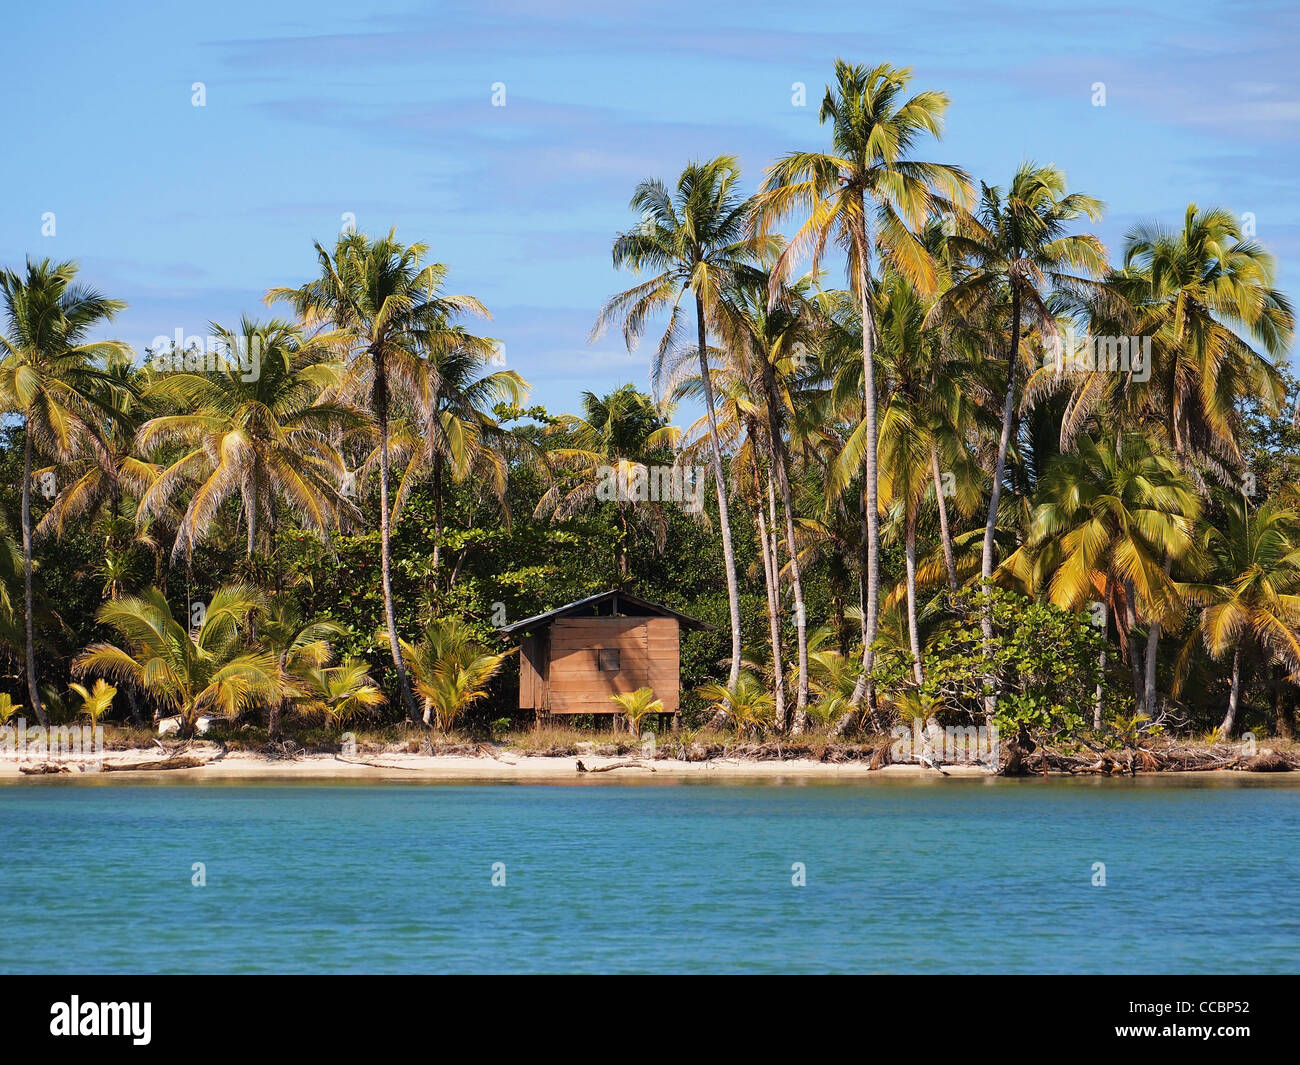 Beautiful palms on tropical beach with a hut, caribbean sea - Stock Image